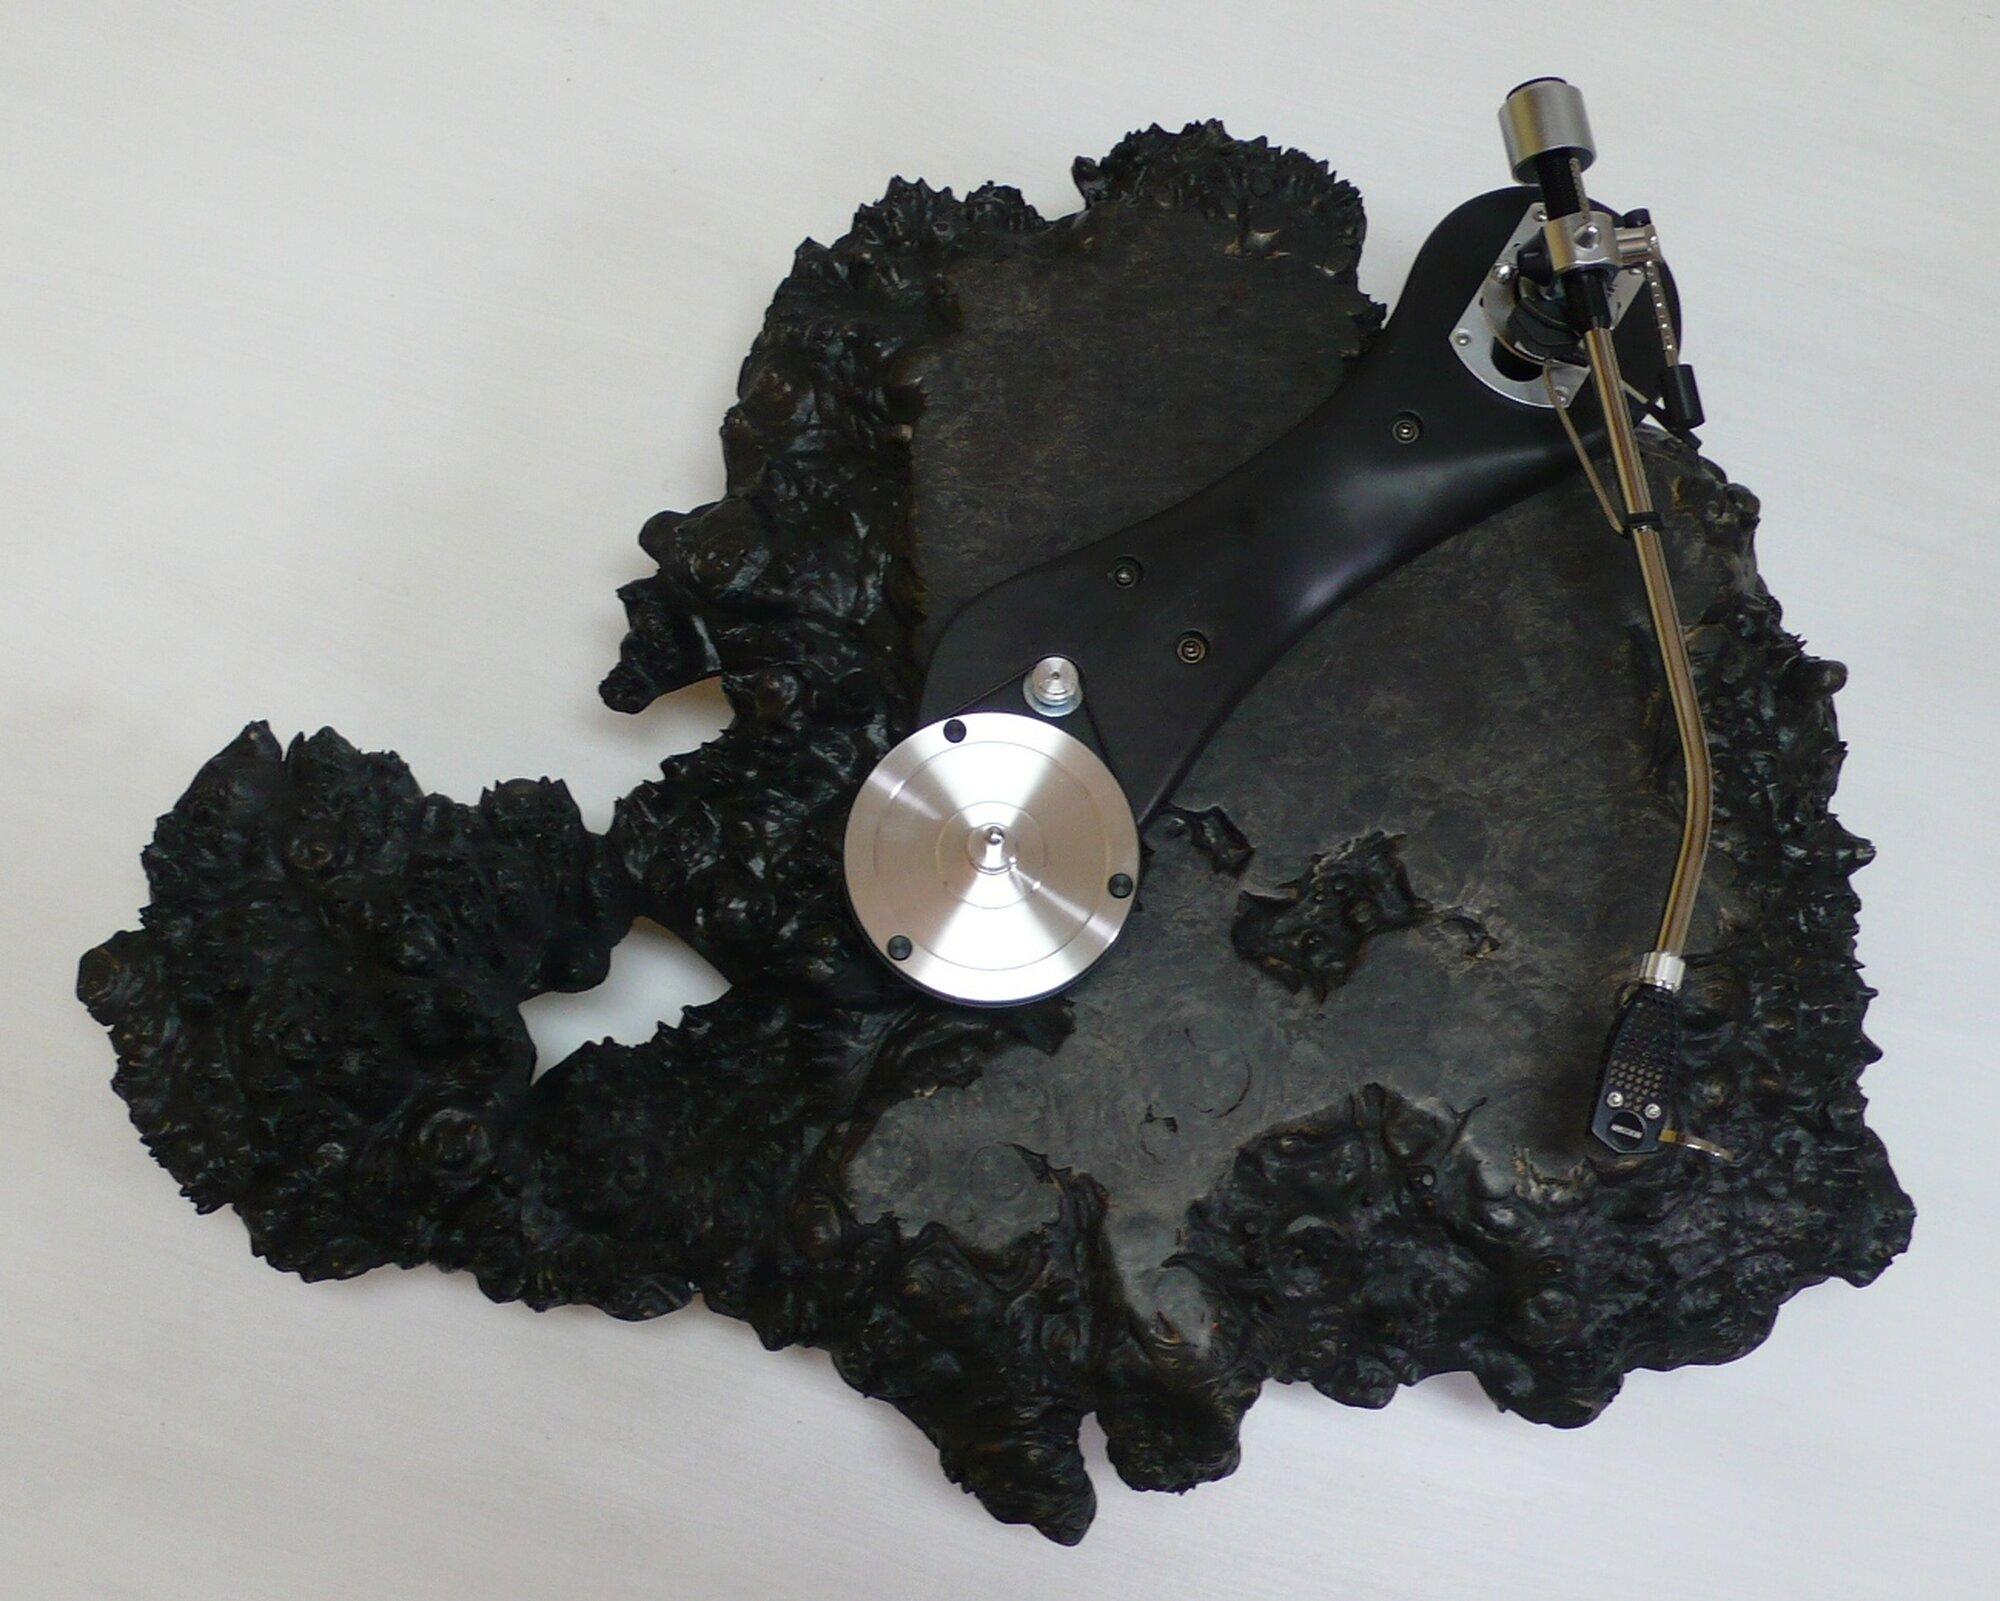 Kilauea Turntable